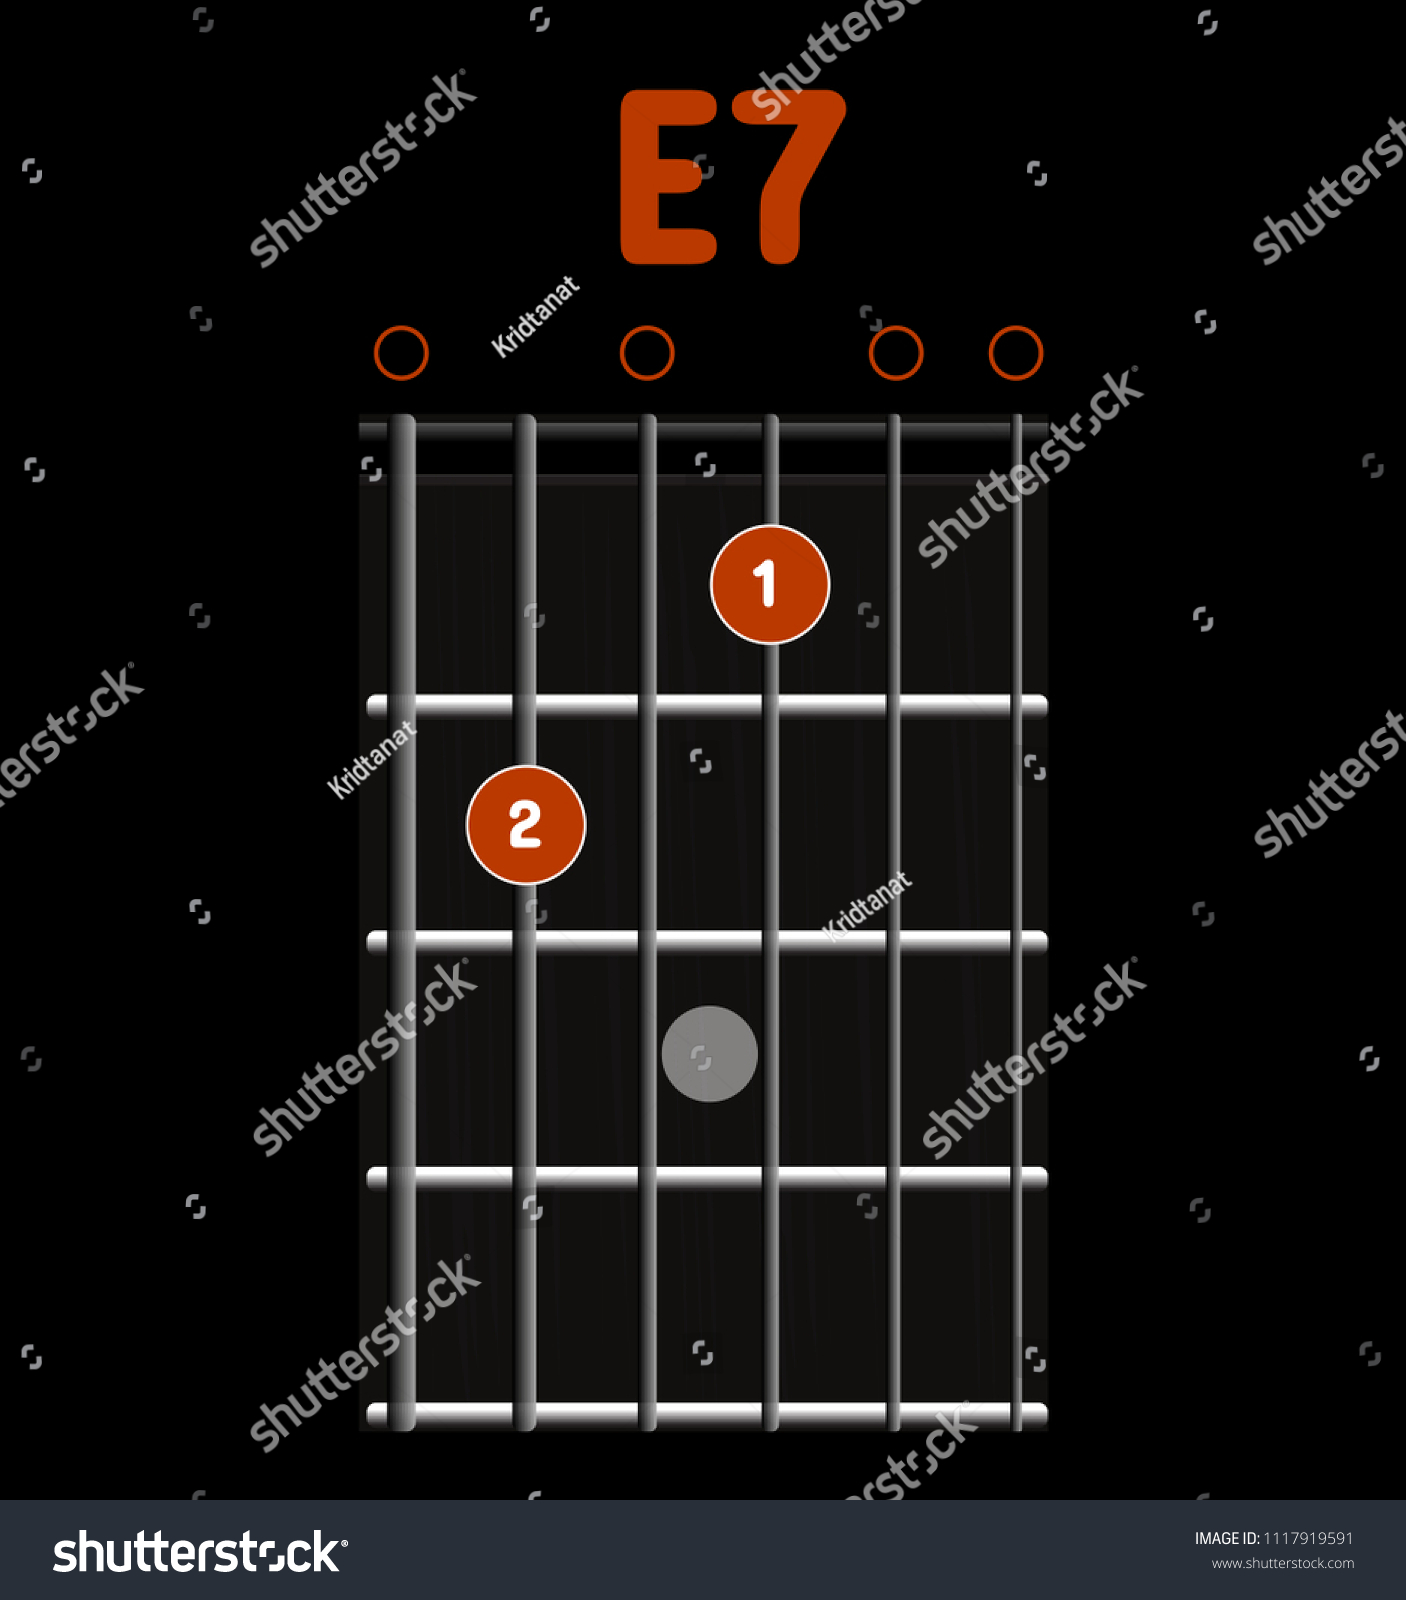 Chord Diagram Tab Tabulation Finger Chart Stock Vector Royalty Free Guitar Acoustic Sketch Electric Basic Chords Lesson